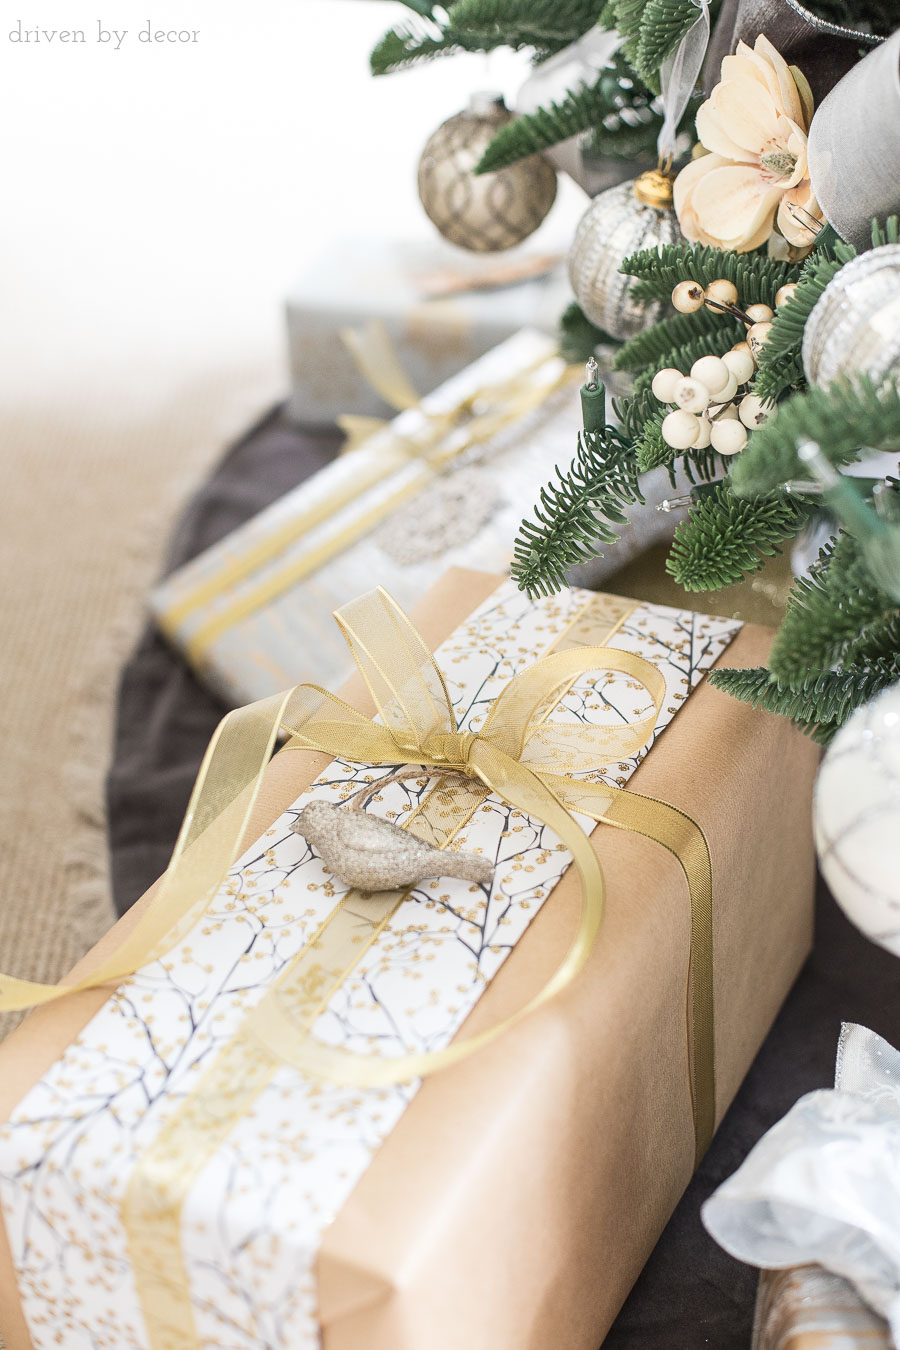 Love this idea for using a piece of scrap gift wrap! Lots of easy Christmas present wrapping ideas in this post!